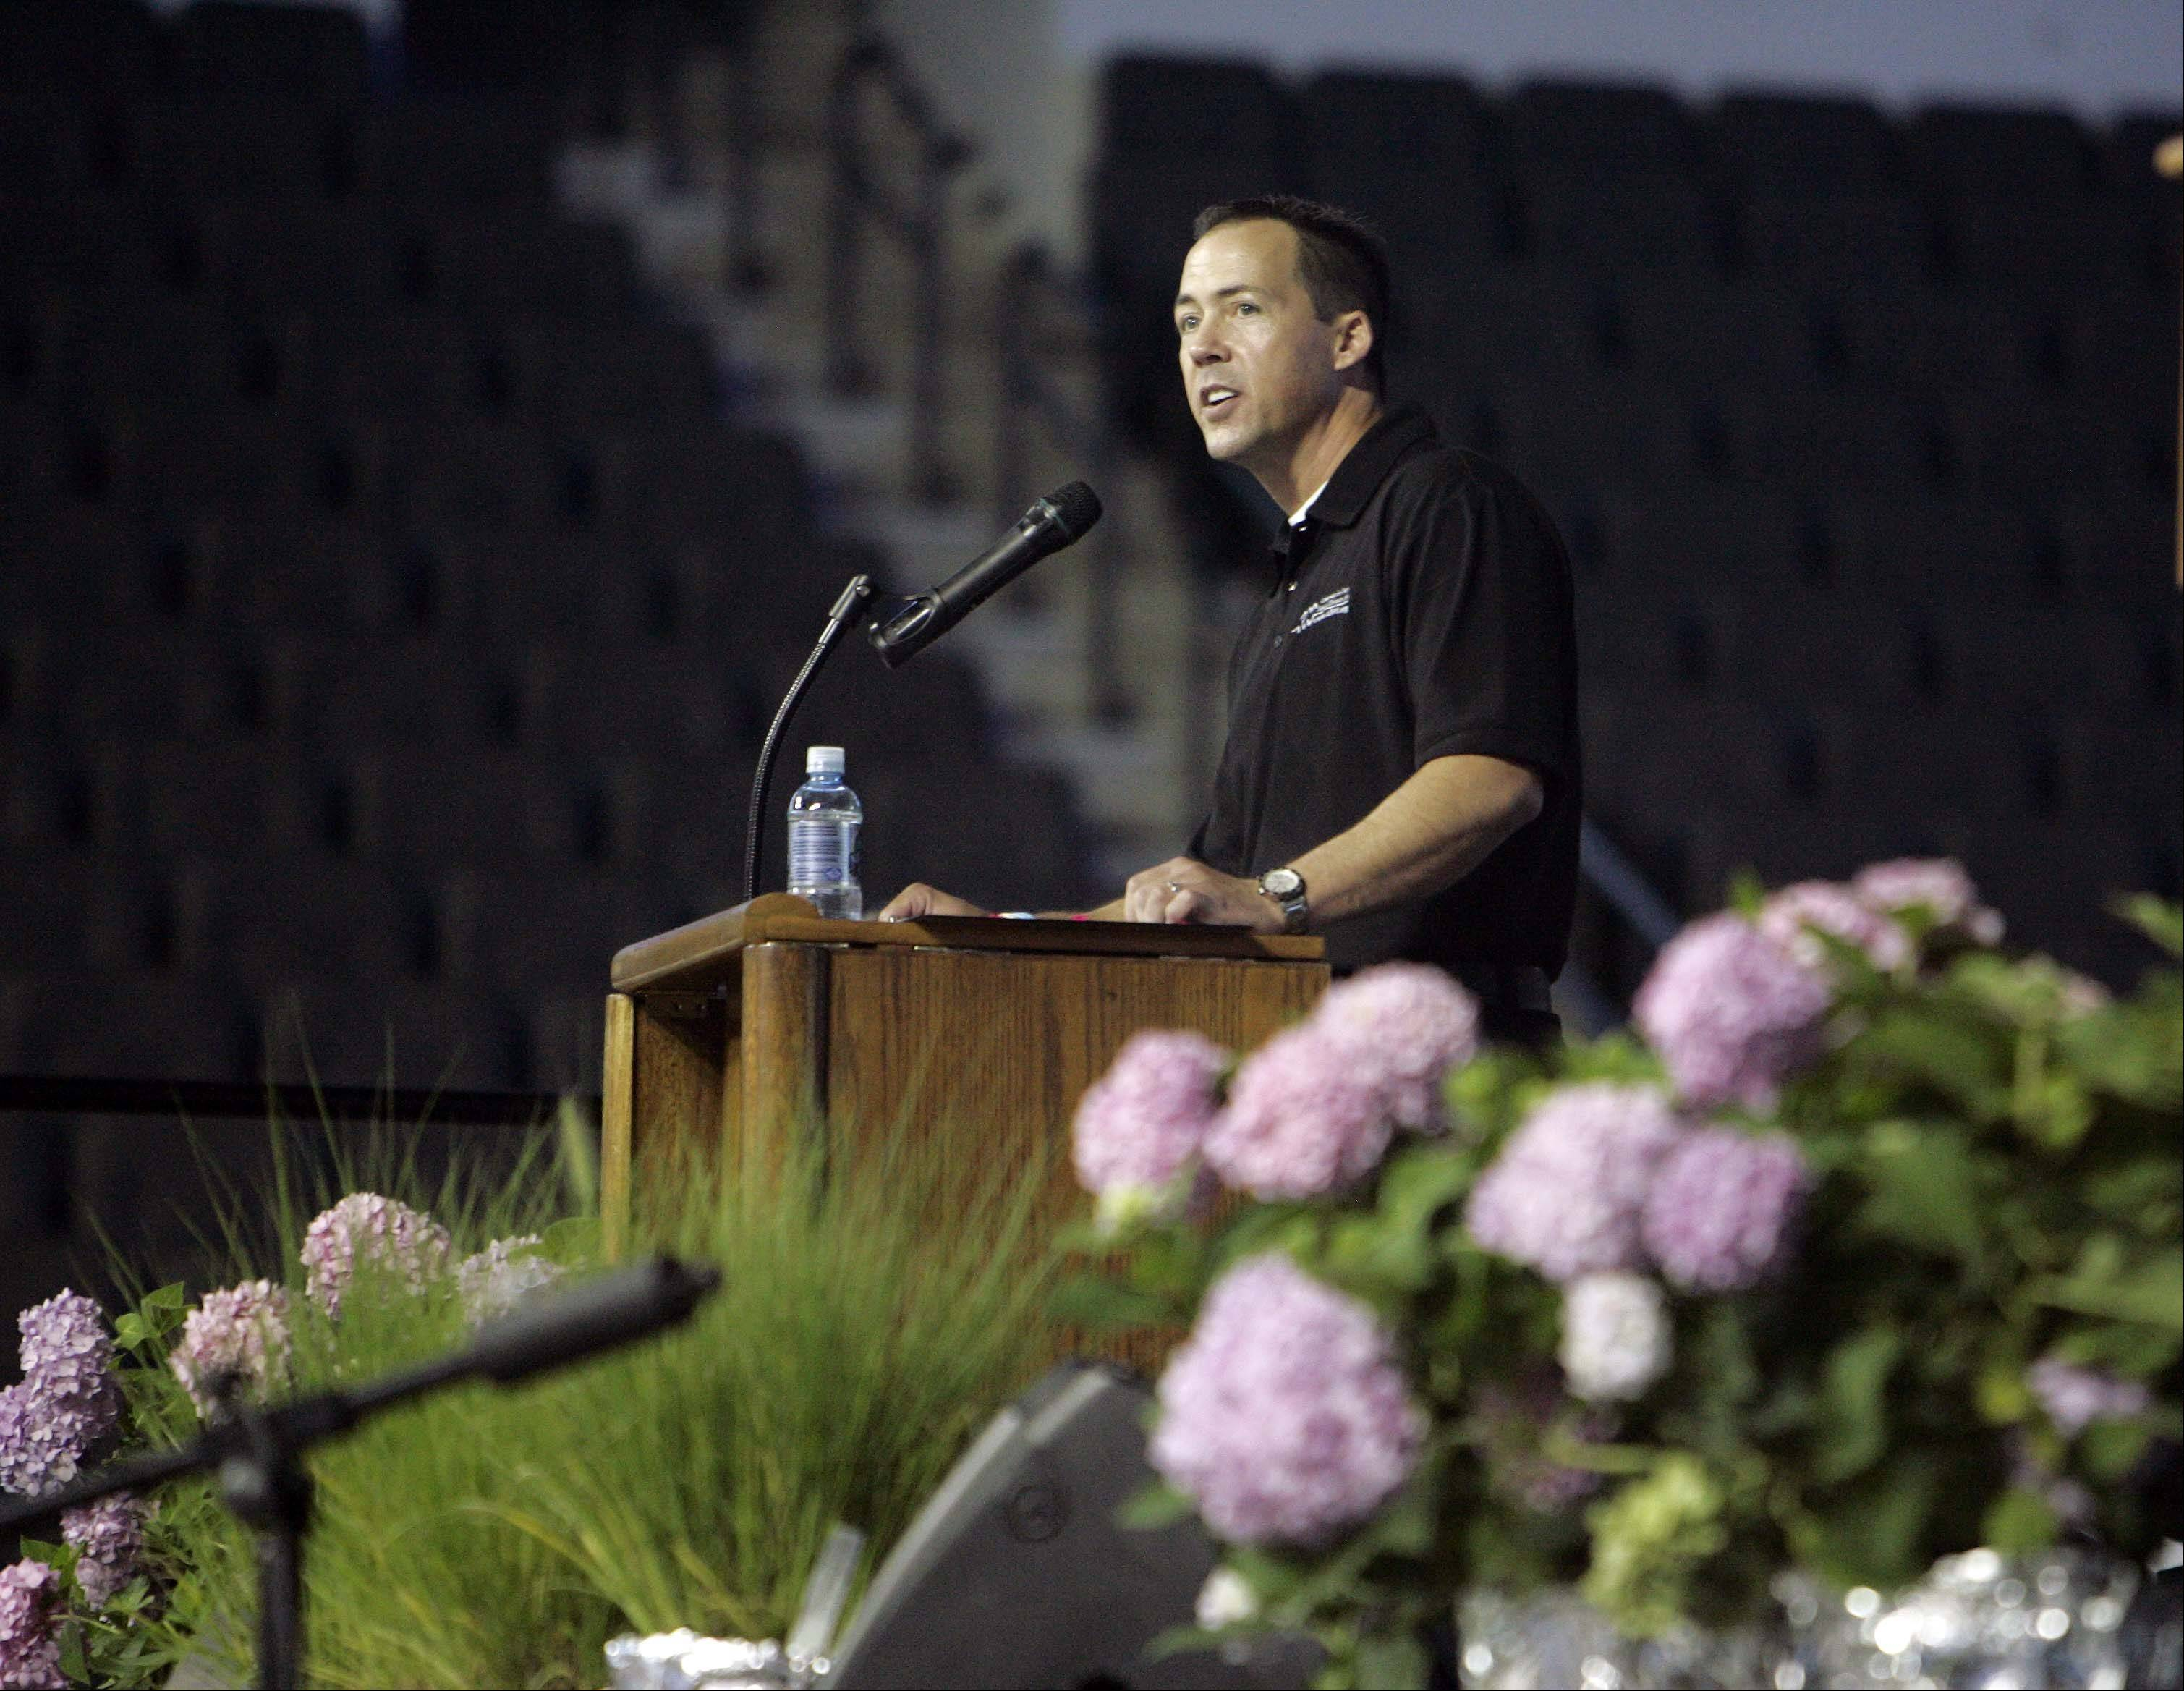 Community Unit District 300 Superintendent Michael Bregy leads more than 3,000 district staff members Friday in a back-to-school rally at the Sears Centre in Hoffman Estates.